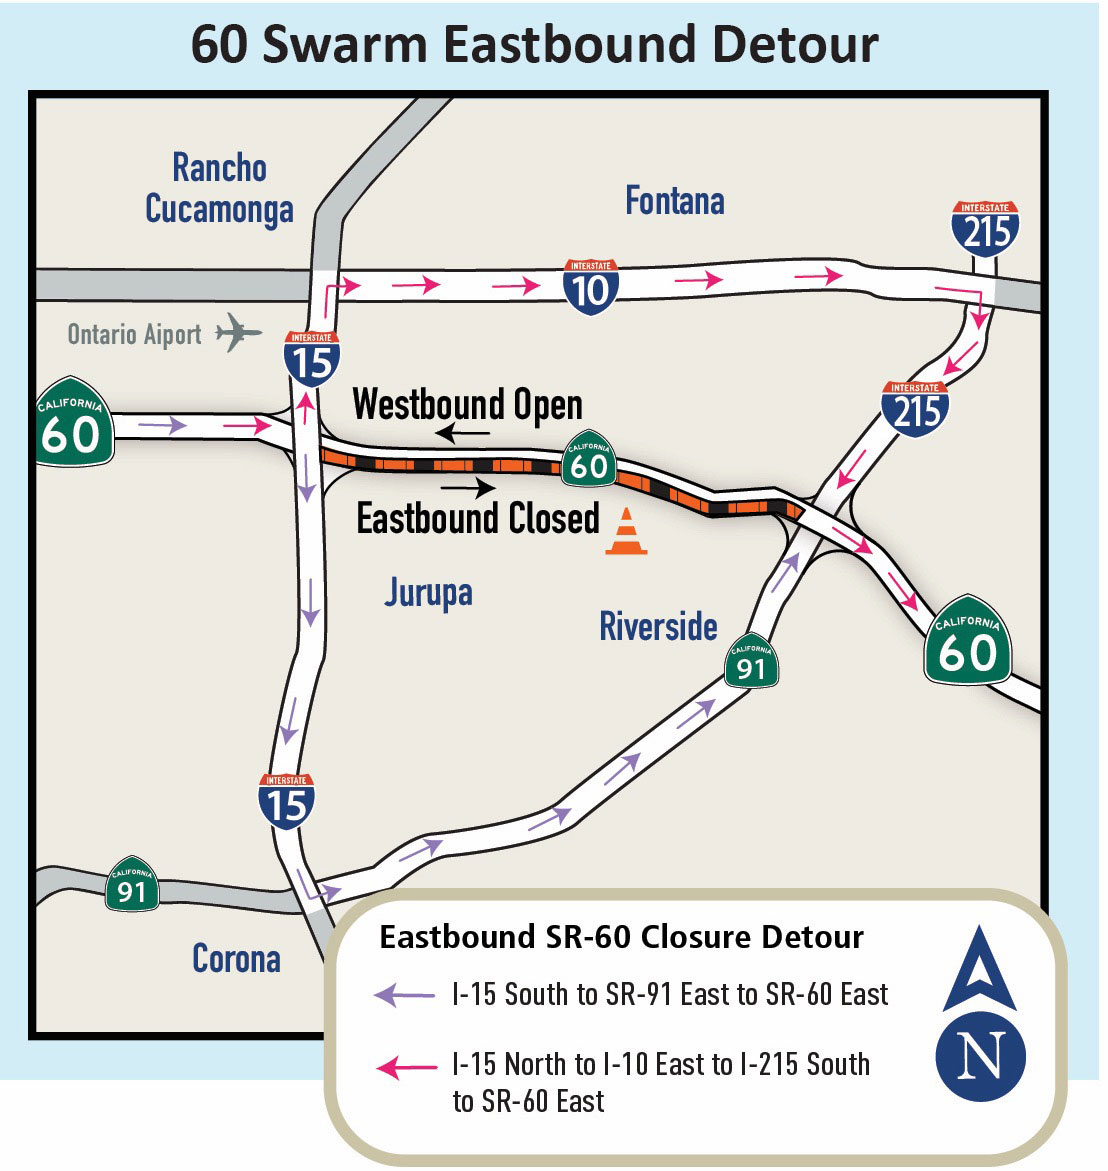 60-Swarm-eastbound-detour-map-2